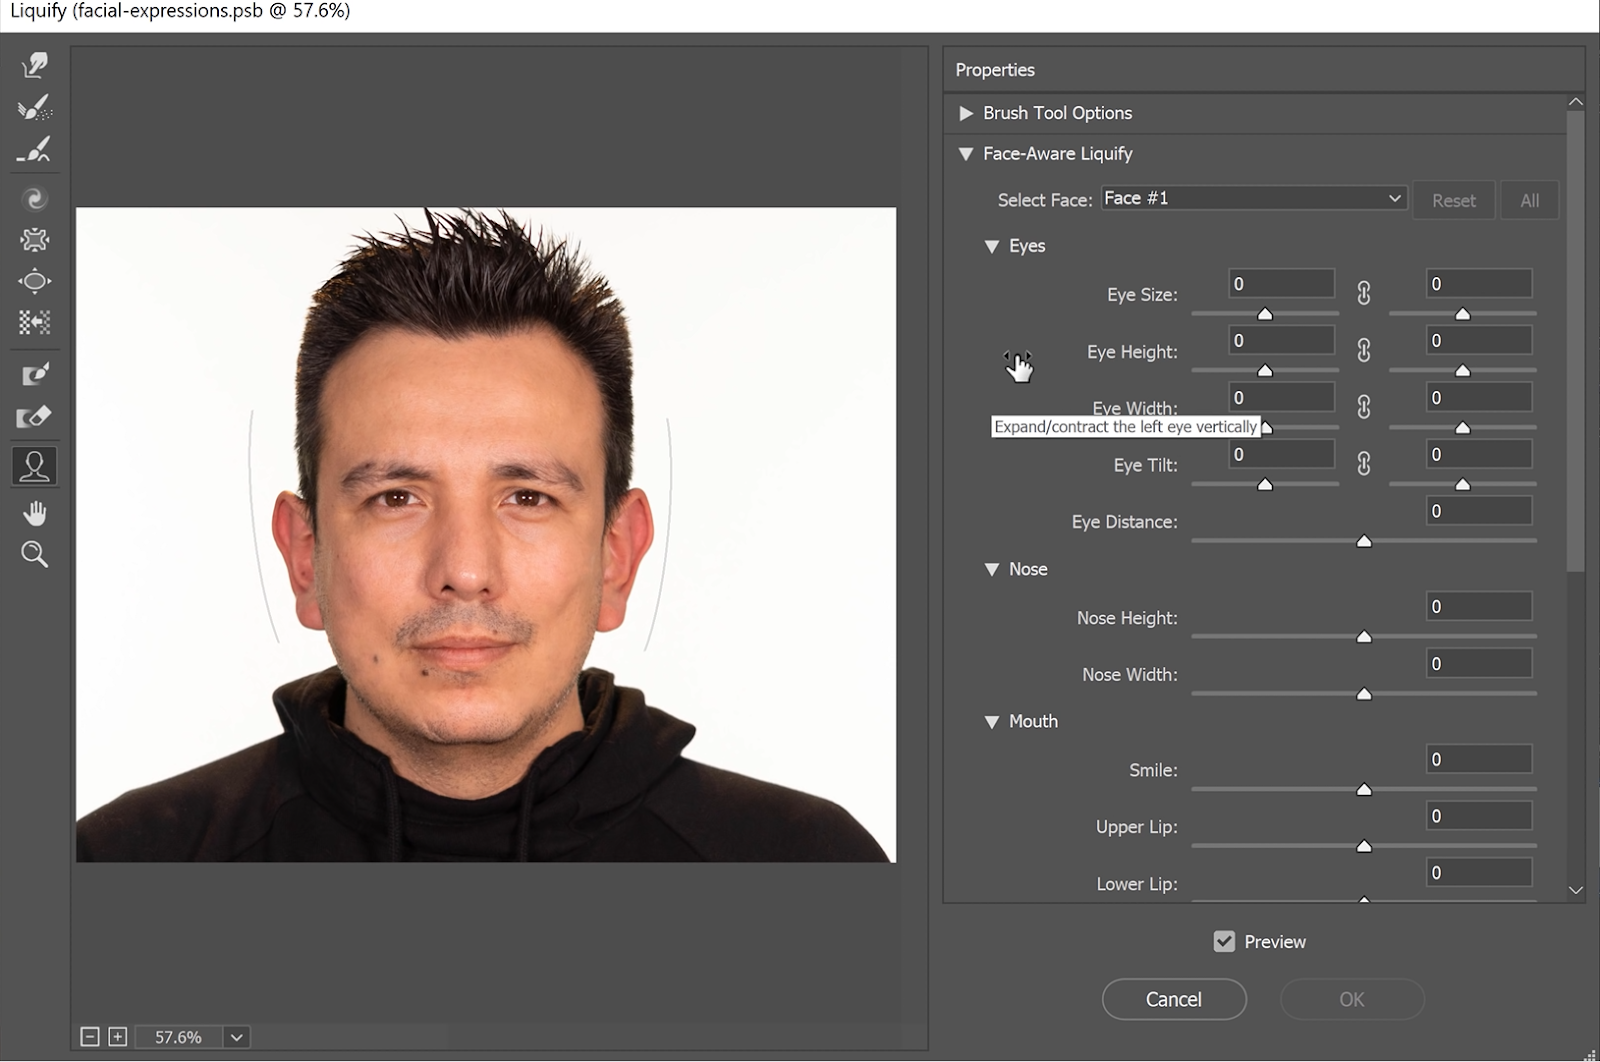 The sliders on the Properties panel that will allow you to accurately adjust each part of the face by inputting number values.